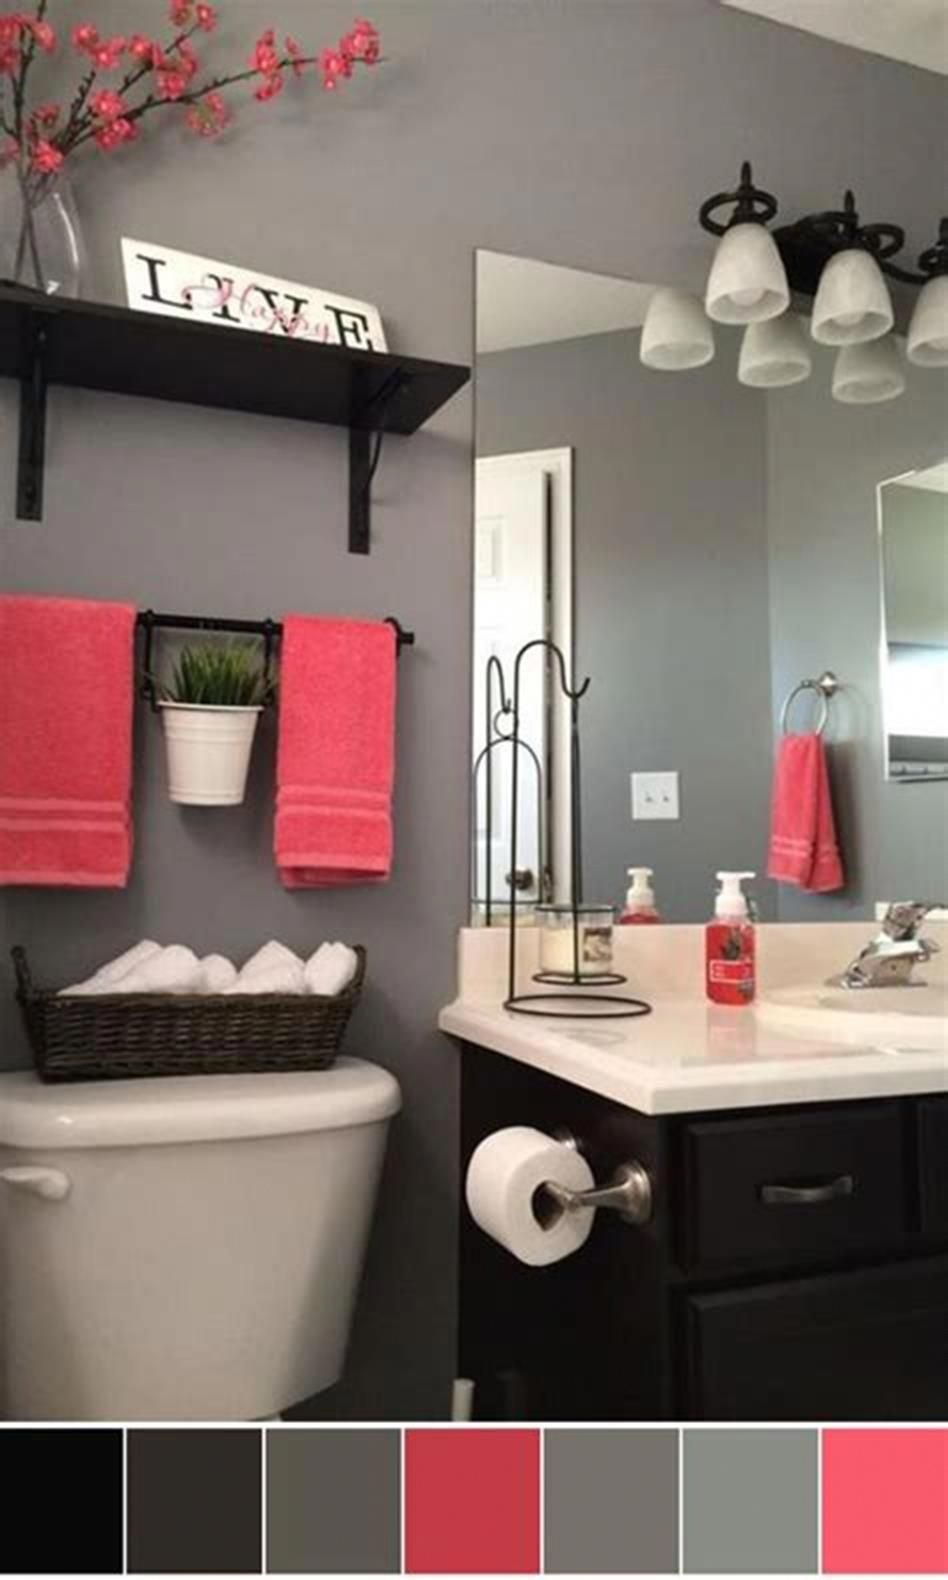 Decorating Ideas for Bathrooms Colors New 40 Best Color Schemes Bathroom Decorating Ideas On A Bud